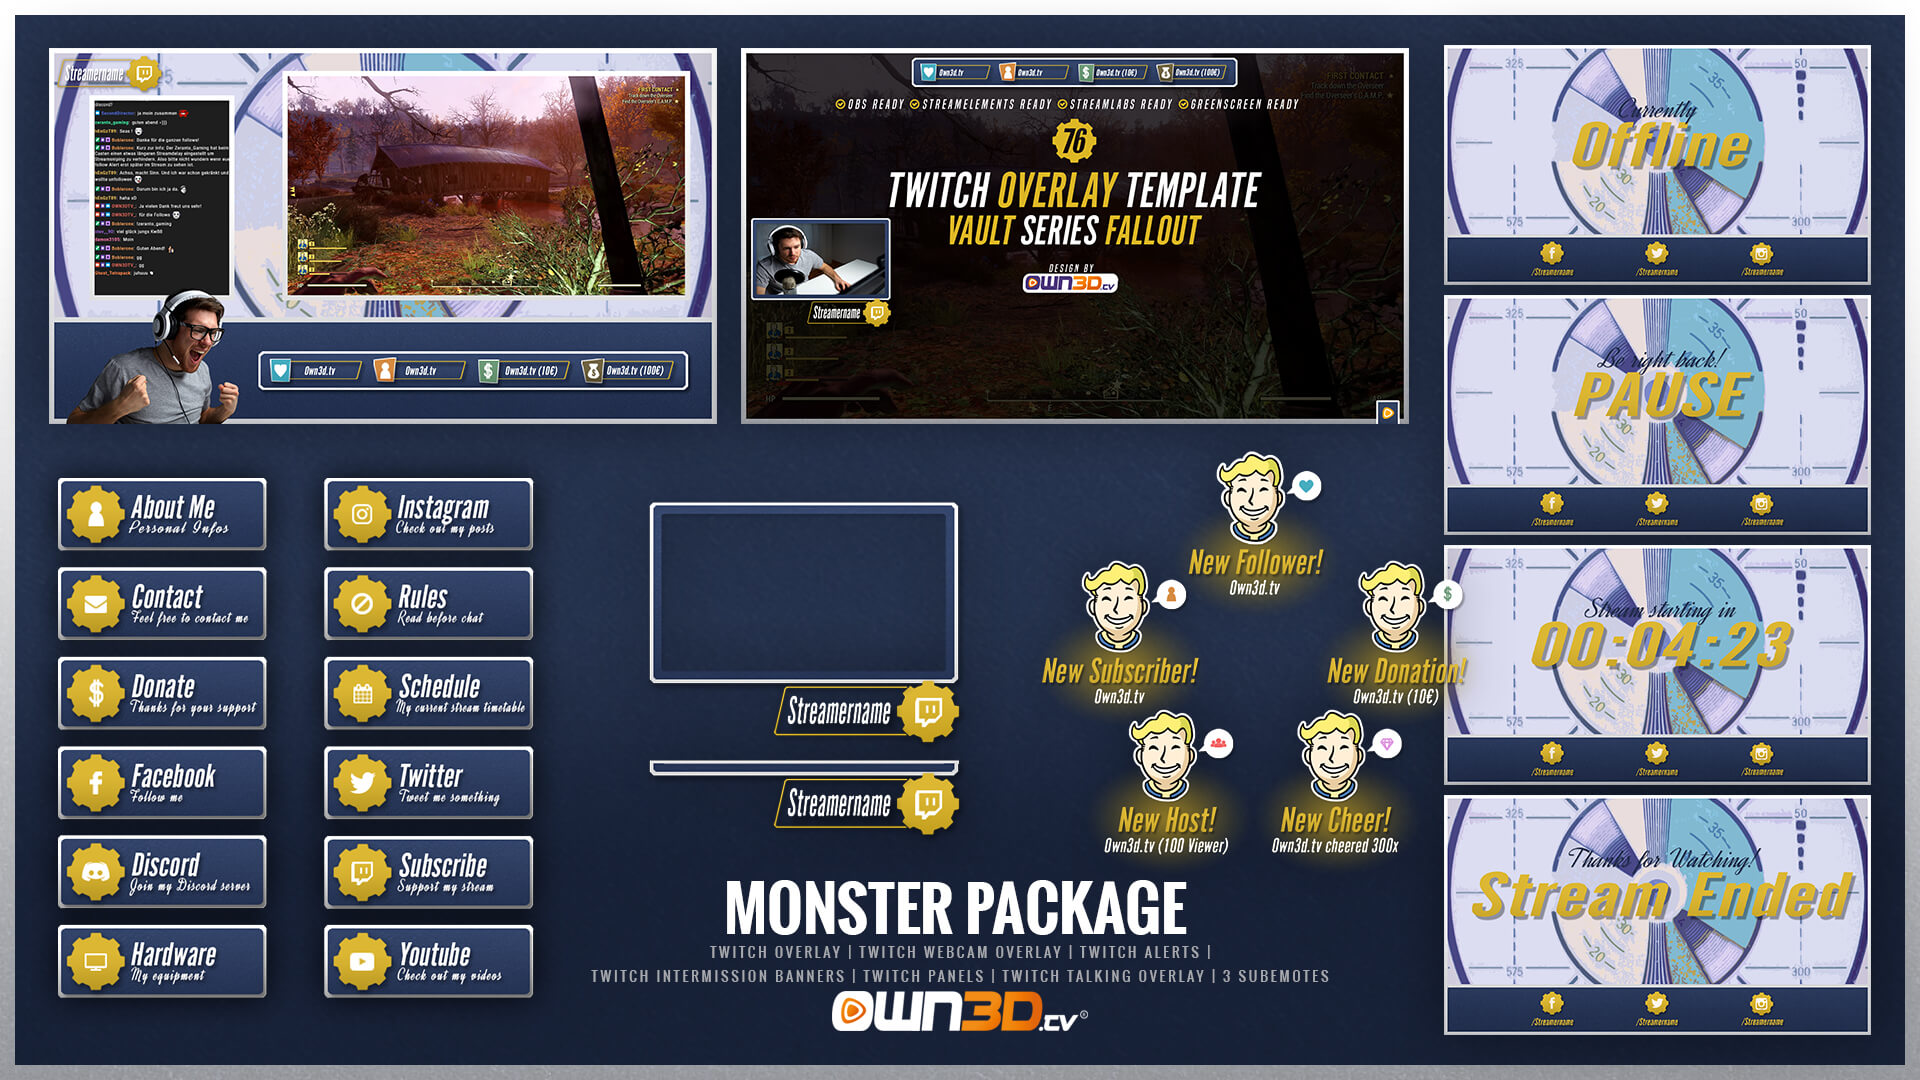 vault-series-fallout-twitch-overlay-package-03-monster.jpg